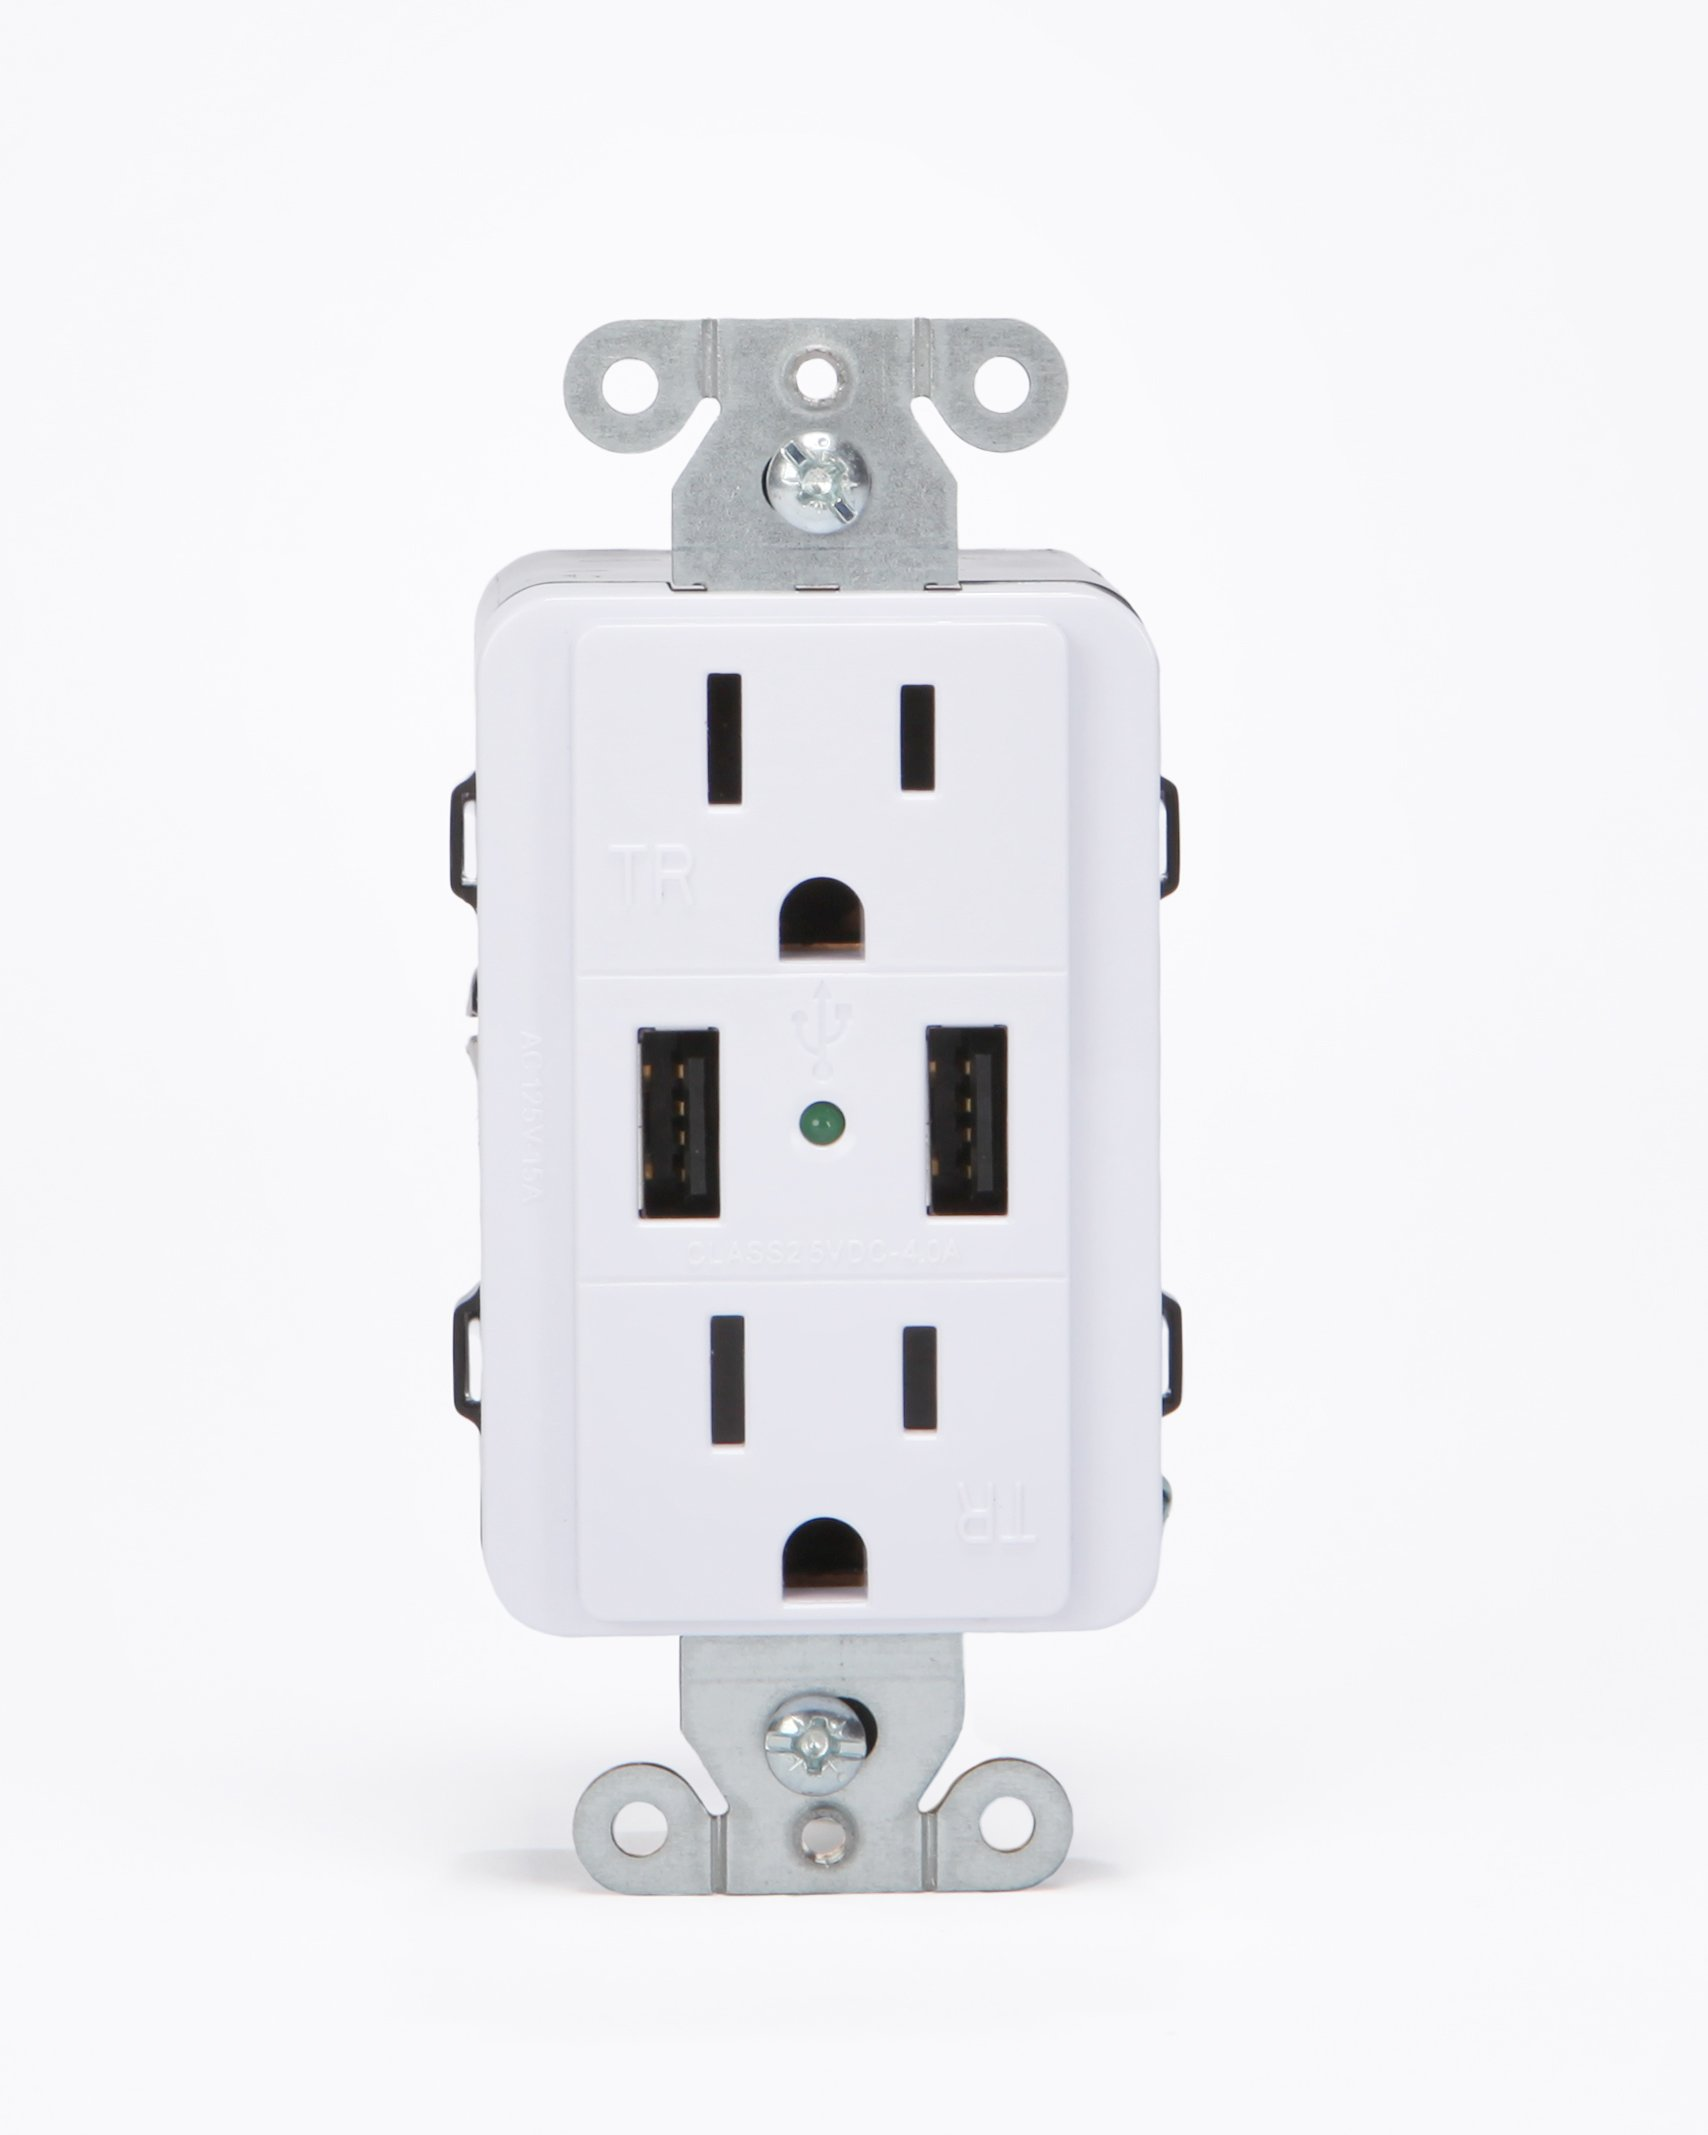 FastMac ACE-7702 U-Socket Decorator Duplex Dual Outlet Dual USB, 110V, 15AMP TruePower, White